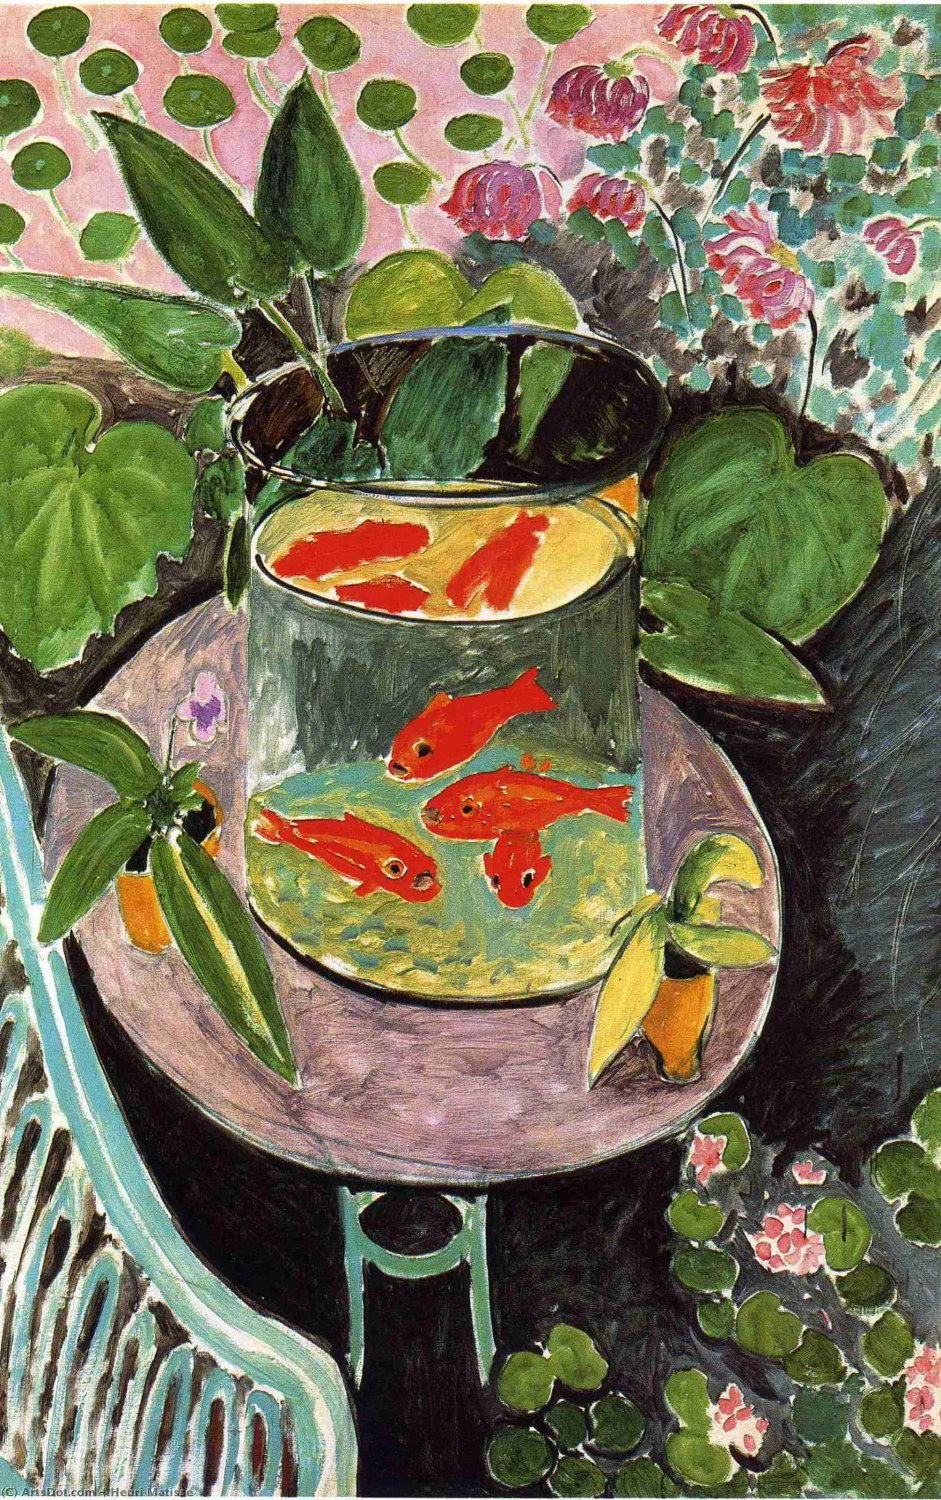 Henri Matisse The Goldfish  13x19 inches Poster Print